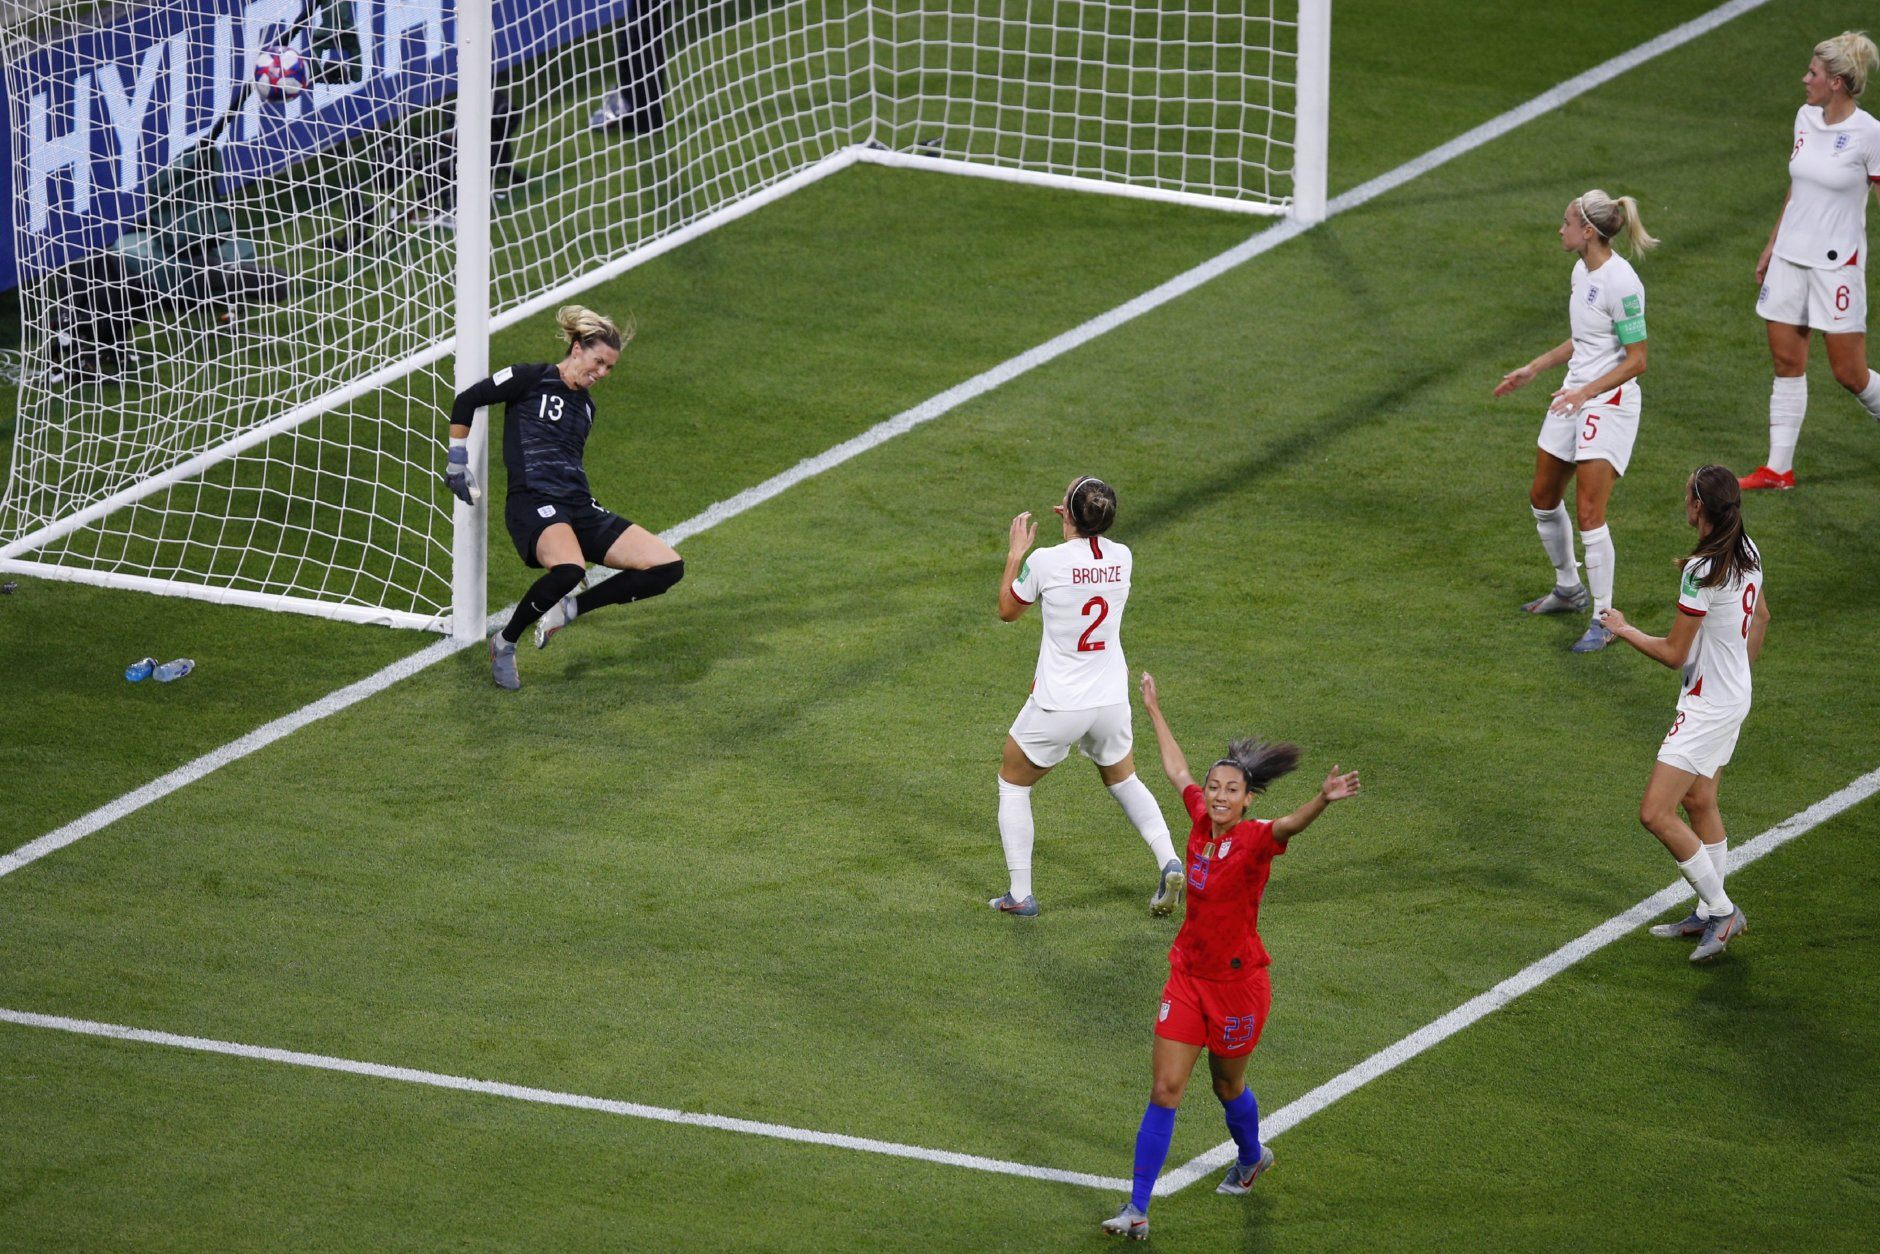 United States' Christen Press, bottom, reacts after scoring the opening goal of her team during the Women's World Cup semifinal soccer match between England and the United States, at the Stade de Lyon outside Lyon, France, Tuesday, July 2, 2019. (AP Photo/Francois Mori)